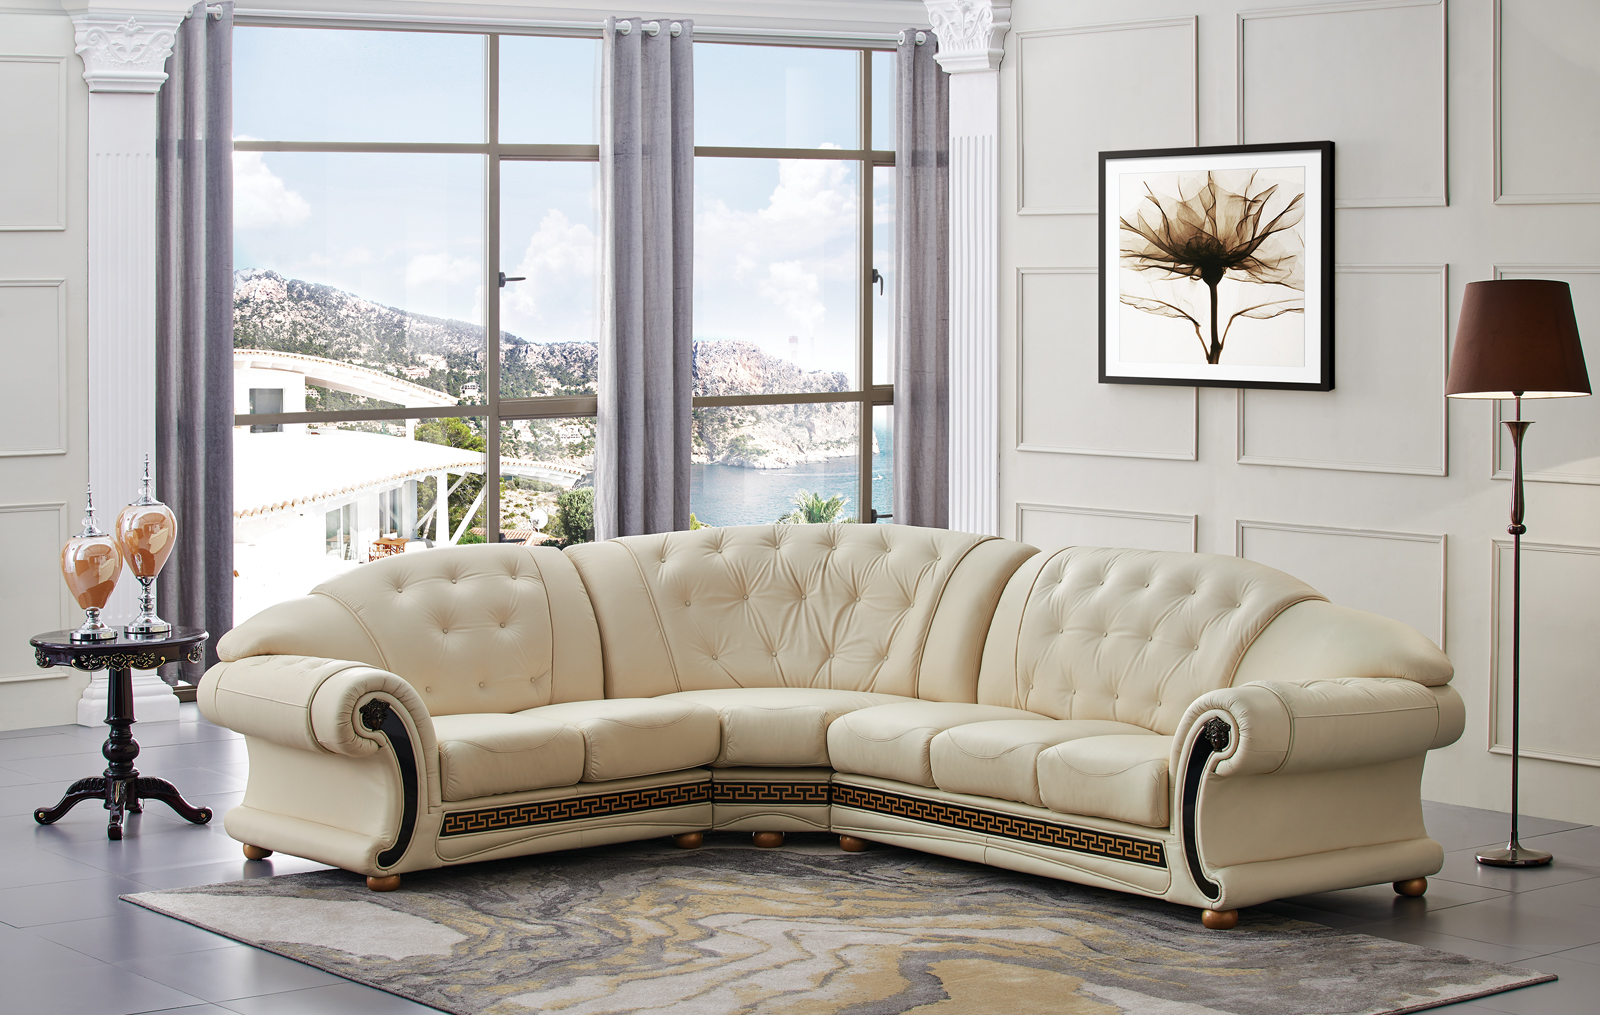 Apolo Sectional Ivory, Sectionals, Living Room Furniture